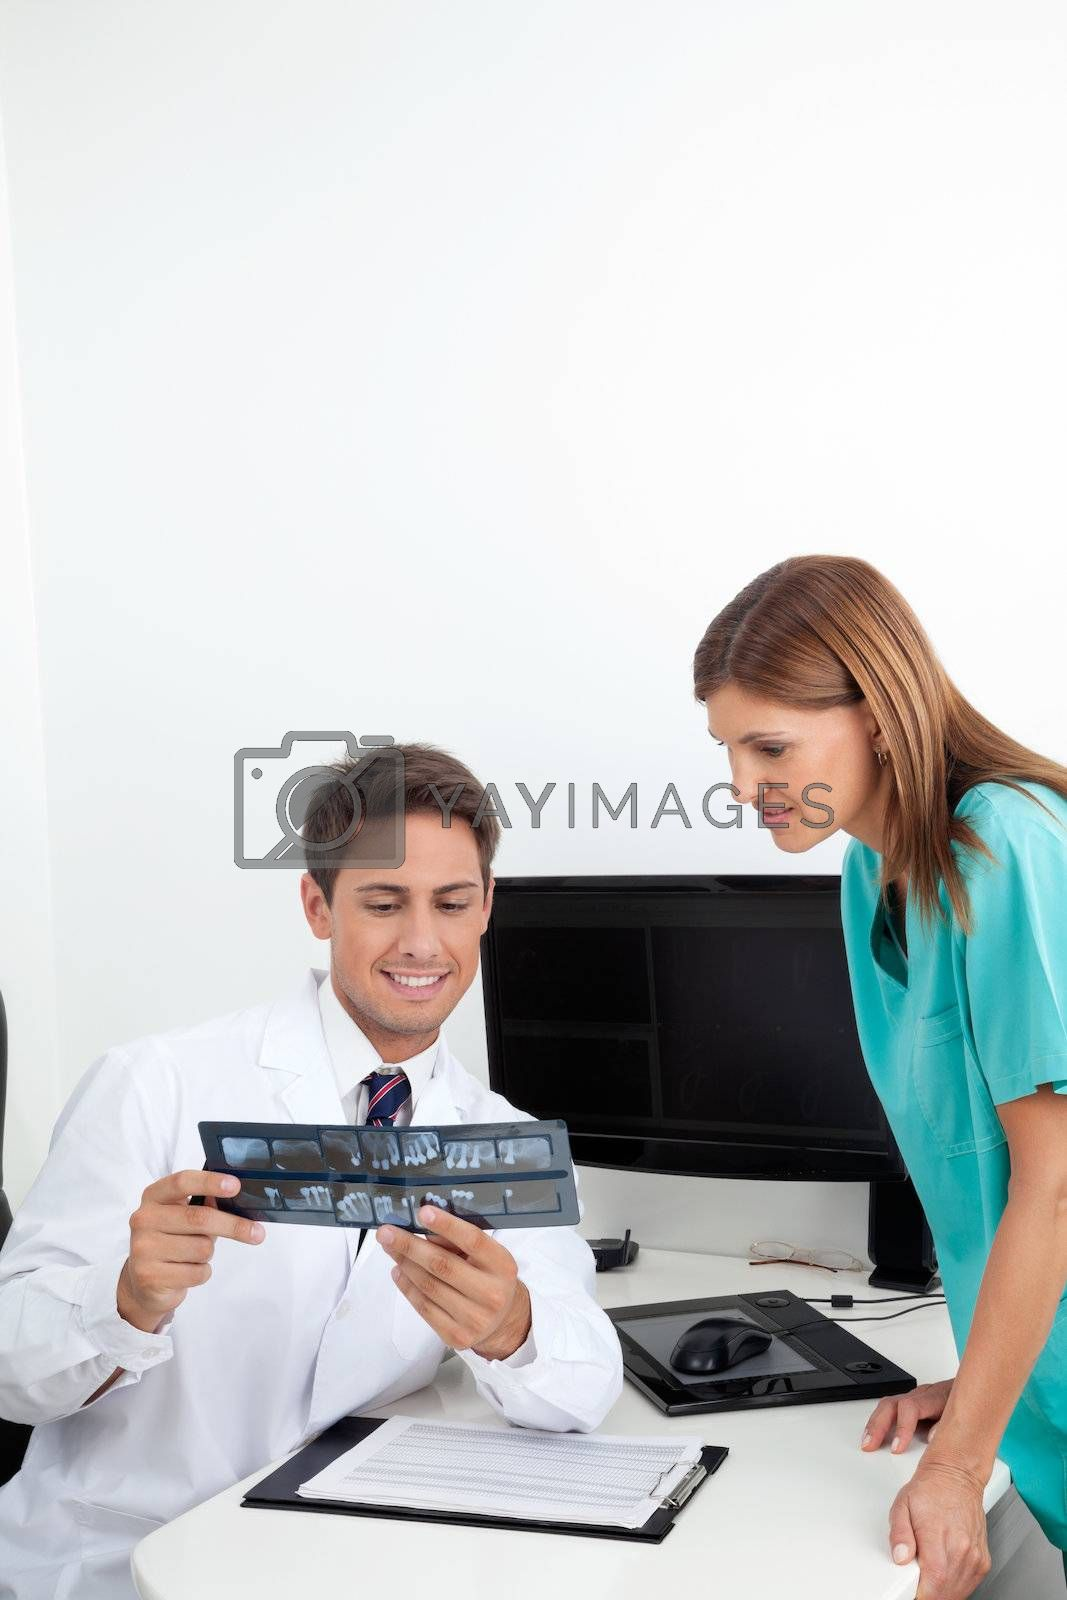 Young dentist and female assistant analyzing X-ray report at office desk